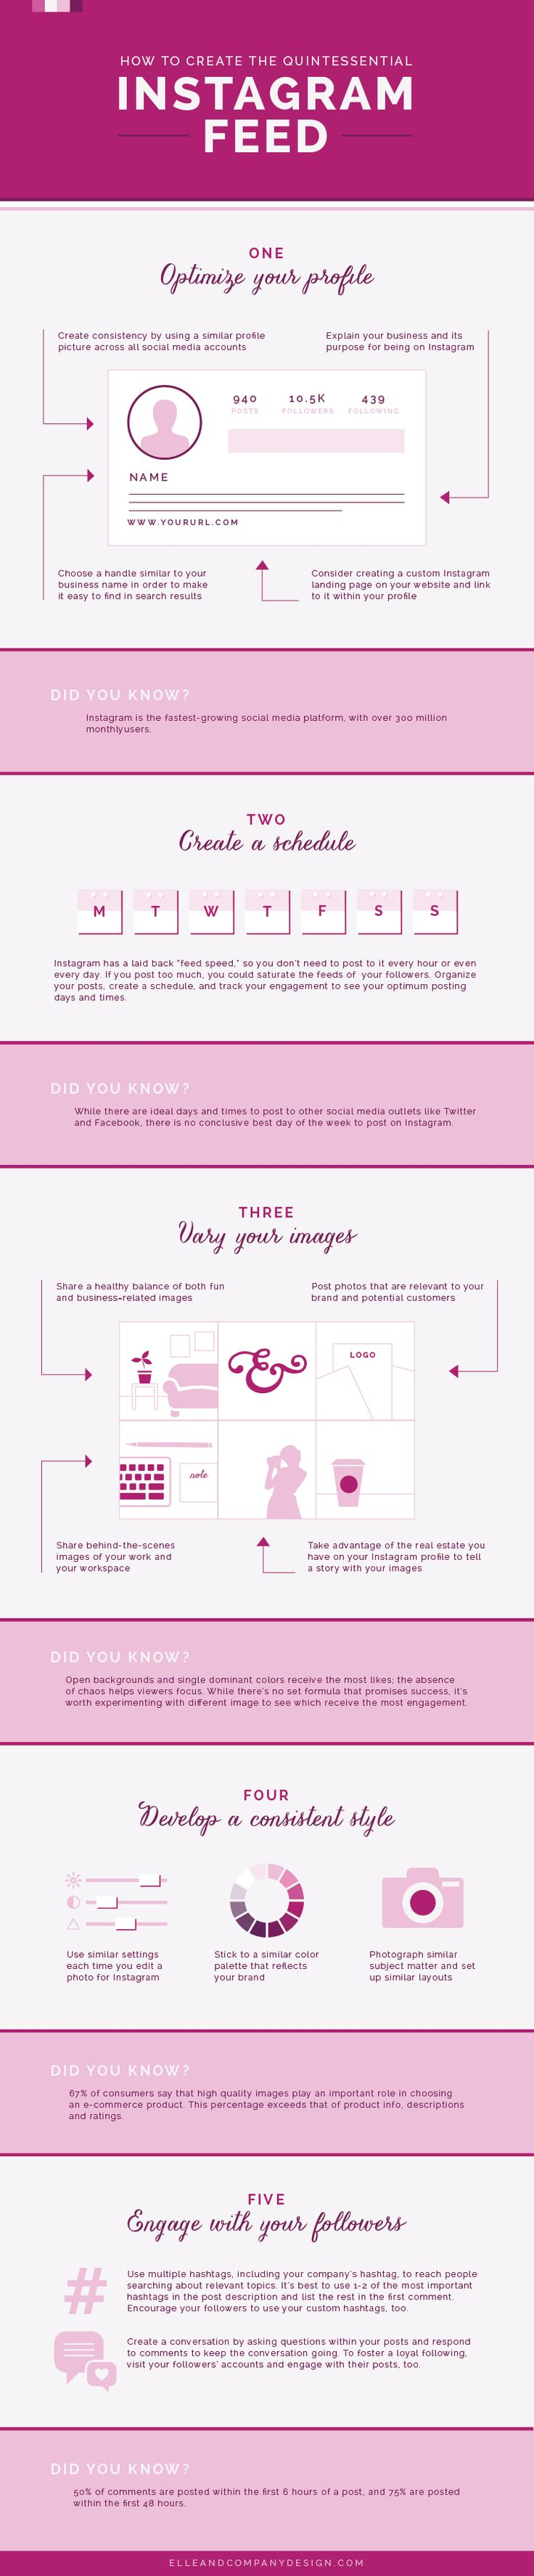 How to create the quintessential instagram feed infographic